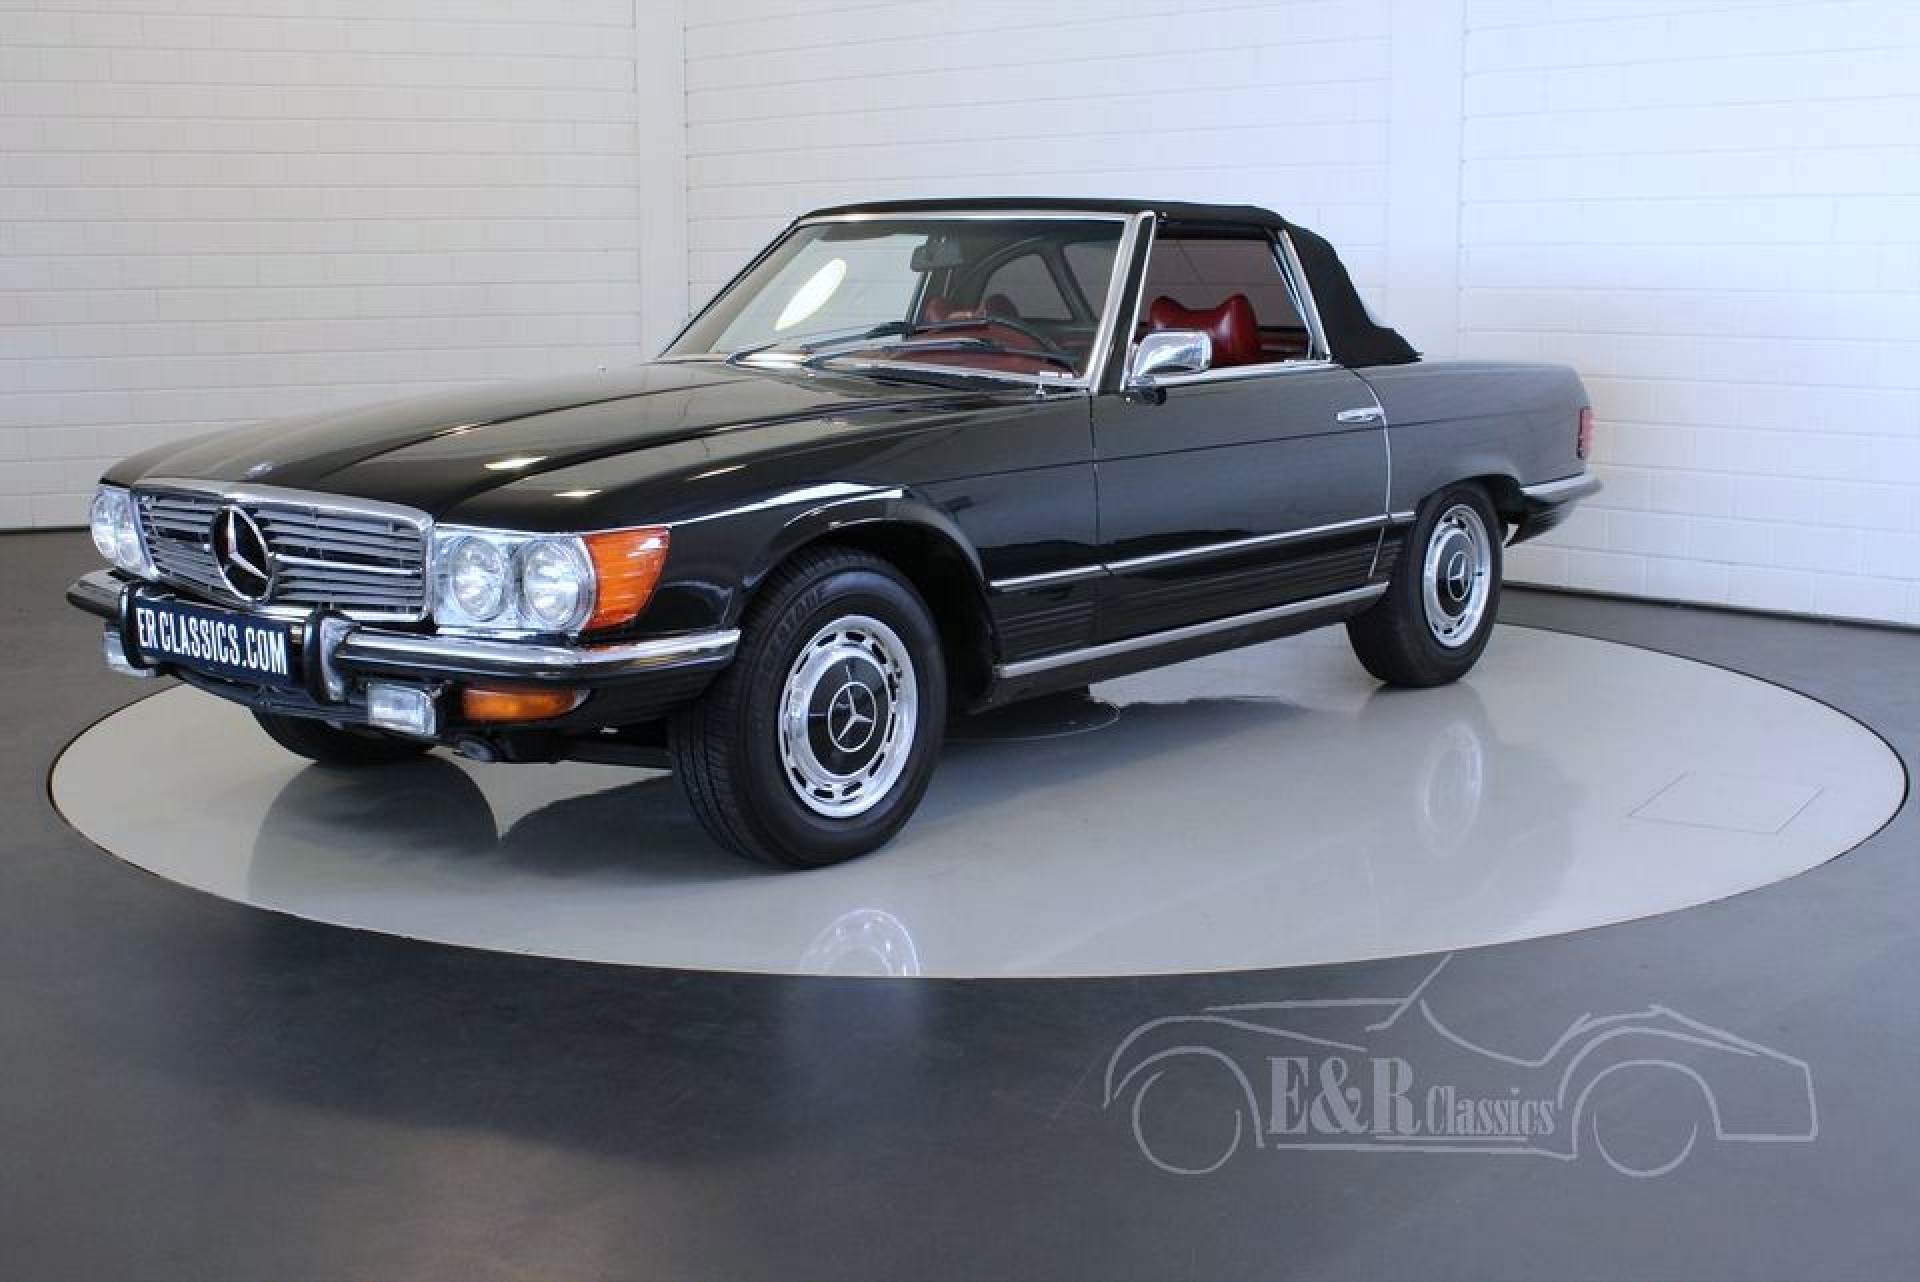 Mercedes benz 350 sl 1972 for sale at erclassics for Mercedes benz 350sl for sale